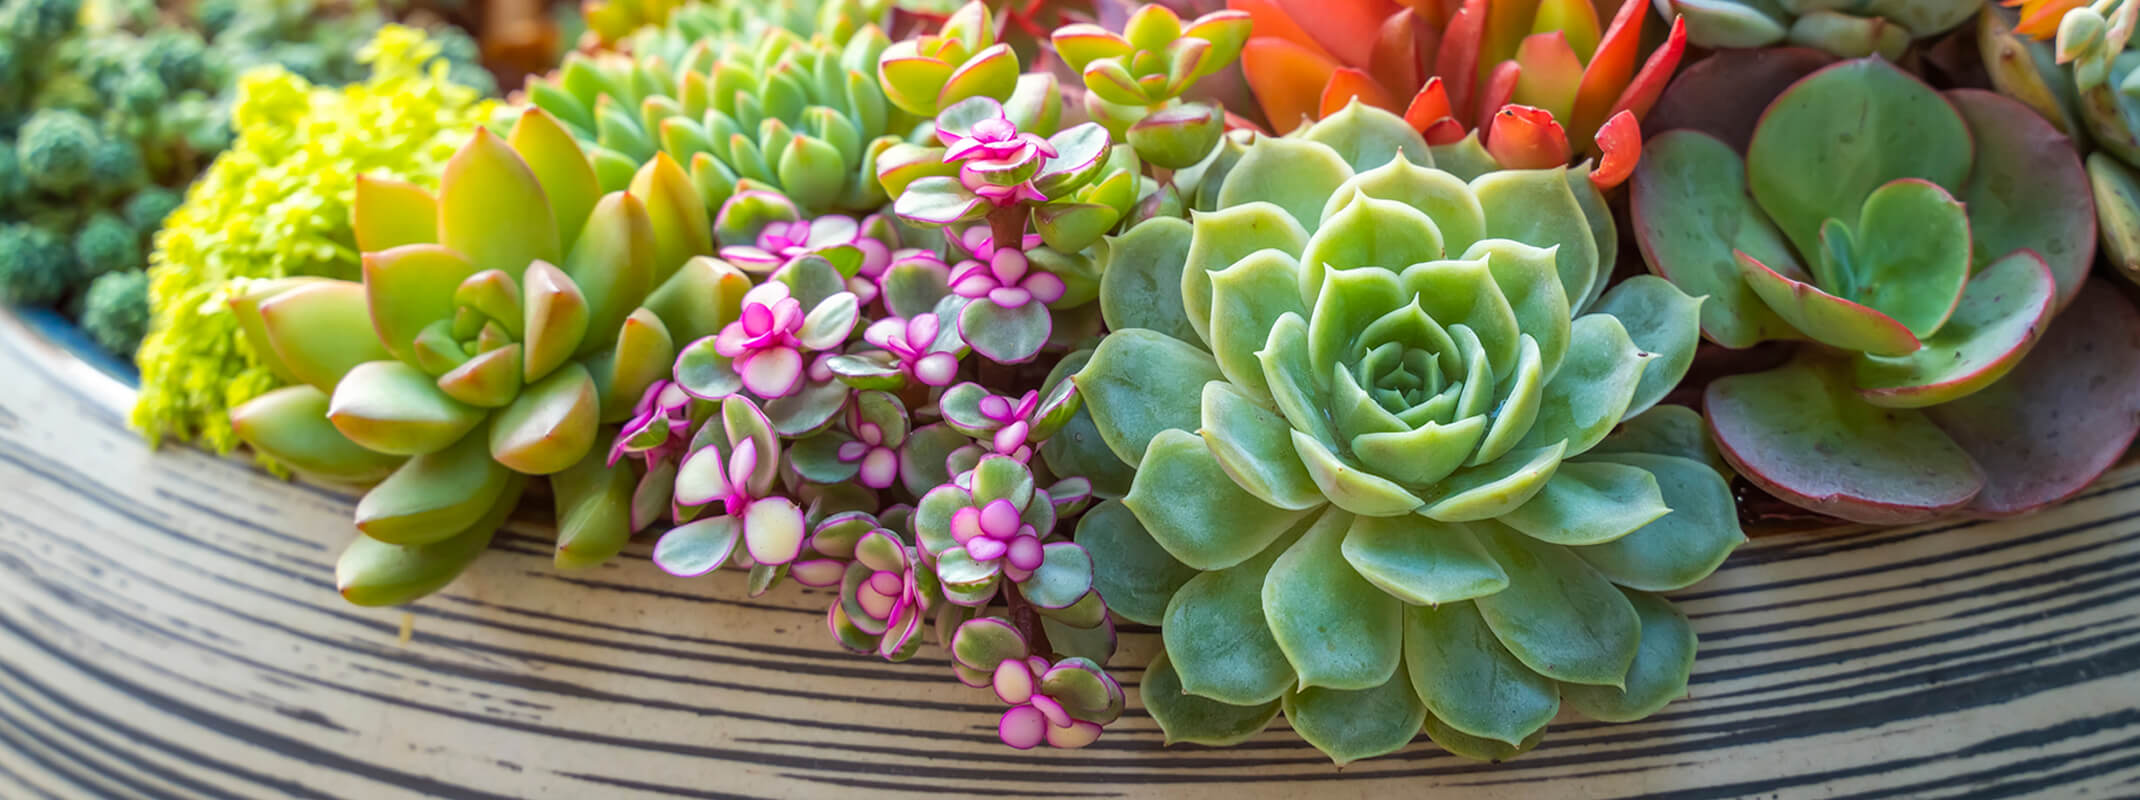 Colorful selection of succulents spilling over in a striped low  bowl